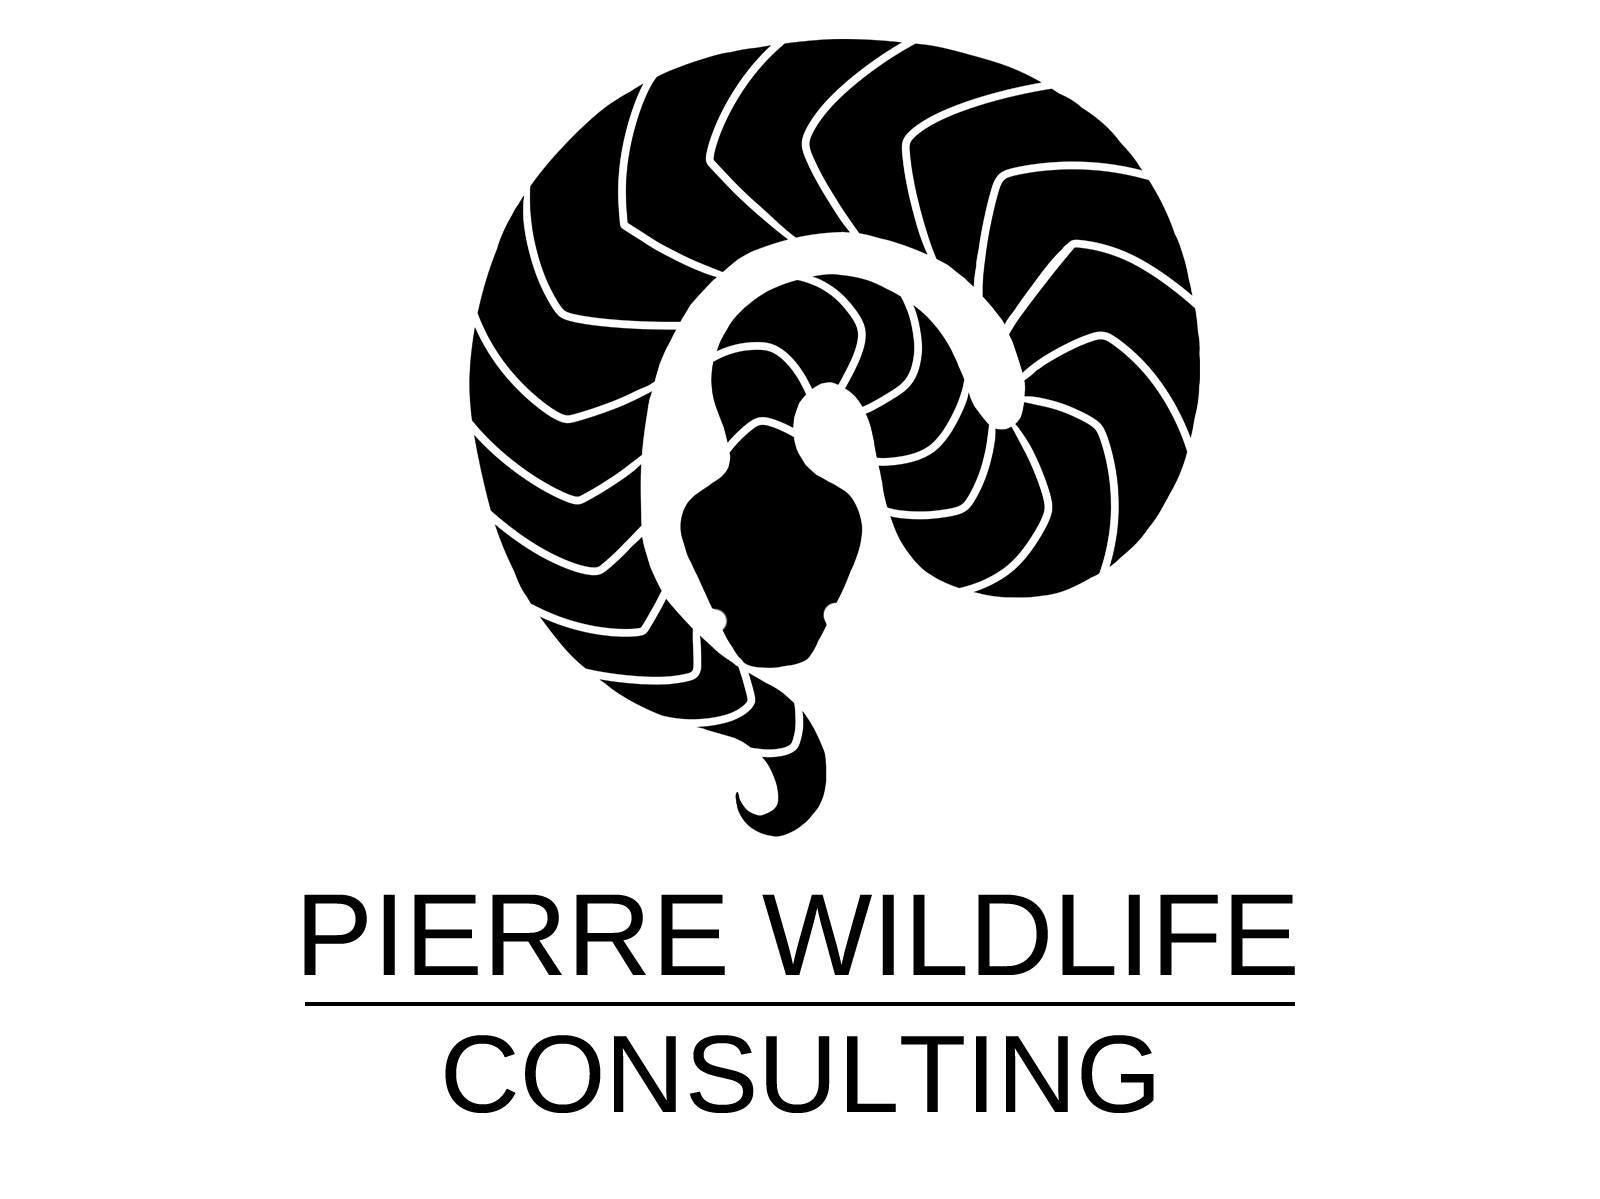 Pierre Wildlife Consulting